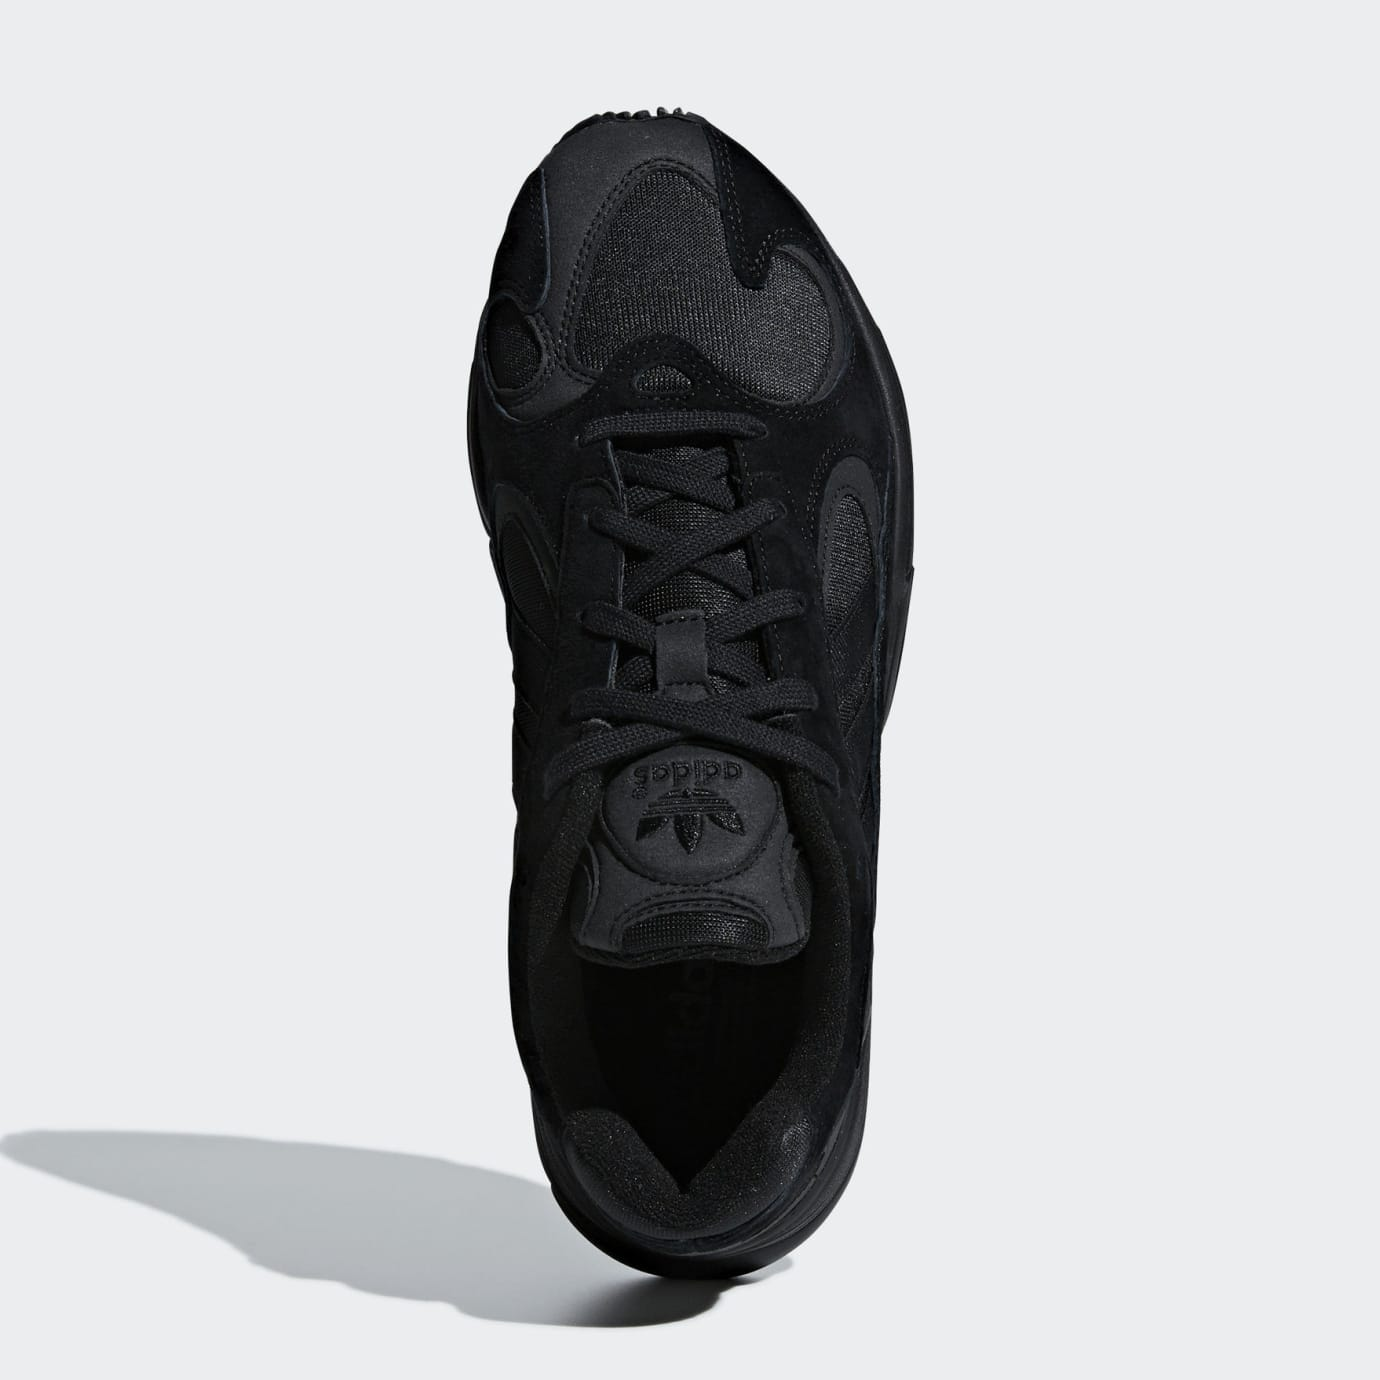 Adidas Yung-1 Triple Black Release Date G27026 Top